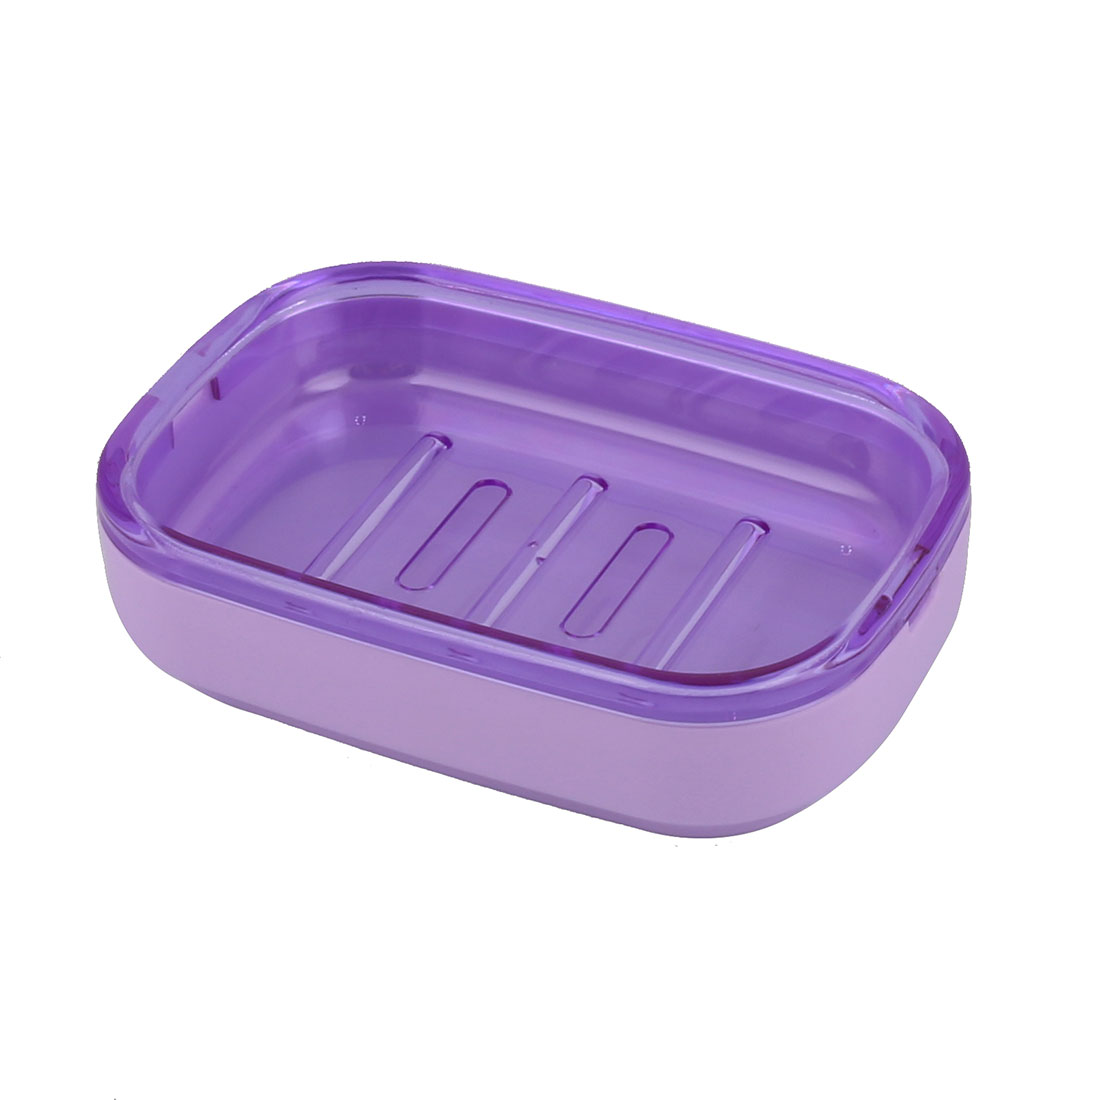 Hotel Household Bathroom Wave Base PP 2 Layers Soap Box Holder Case Container Purple